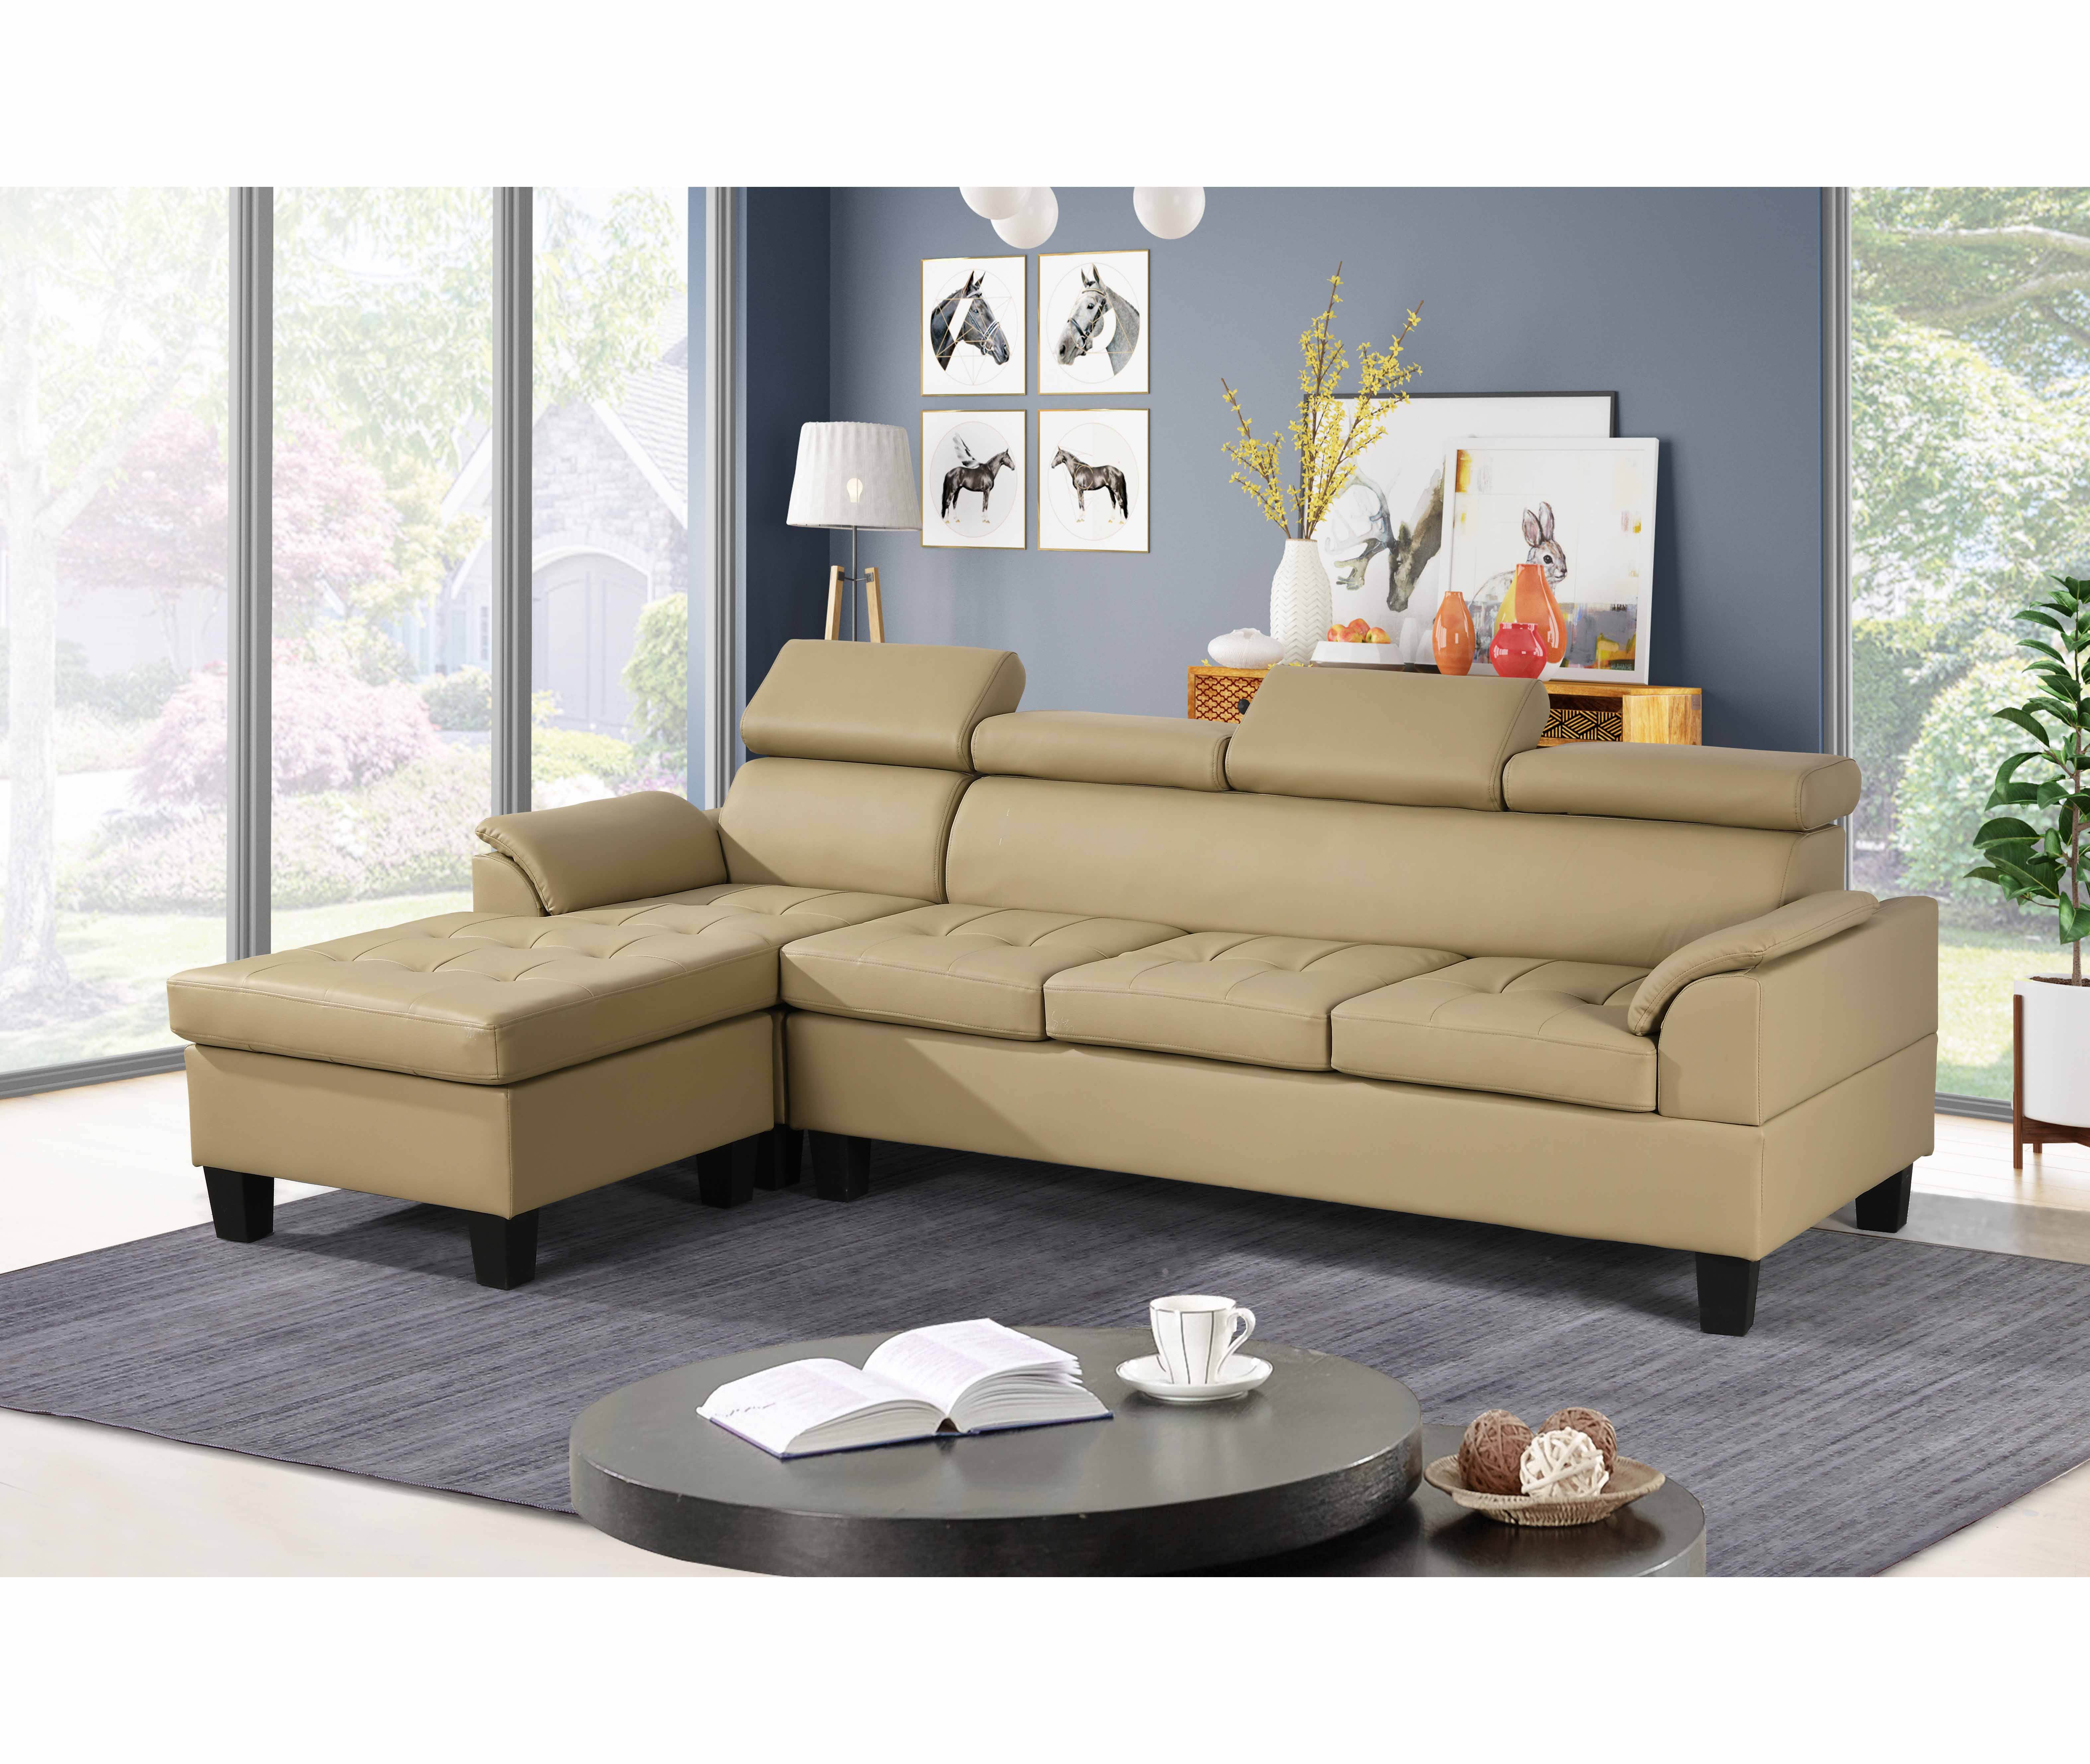 Latest Beige living room leather Factory Custom Wholesale classic cheap sofa